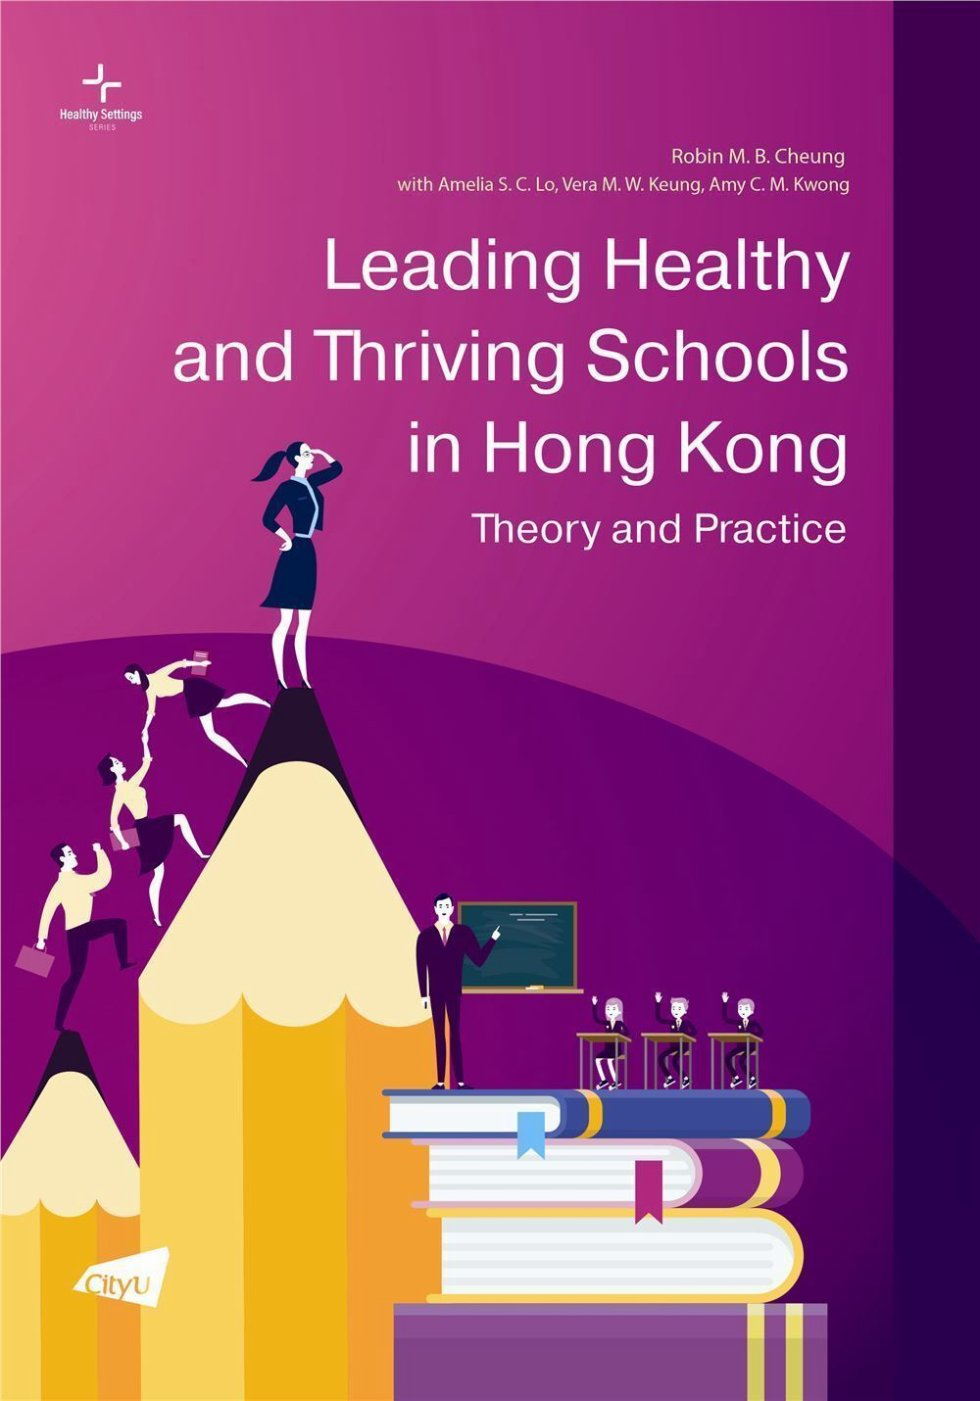 Leading Healthy and Thriving Schools in Hong Kong: Theory and Practice